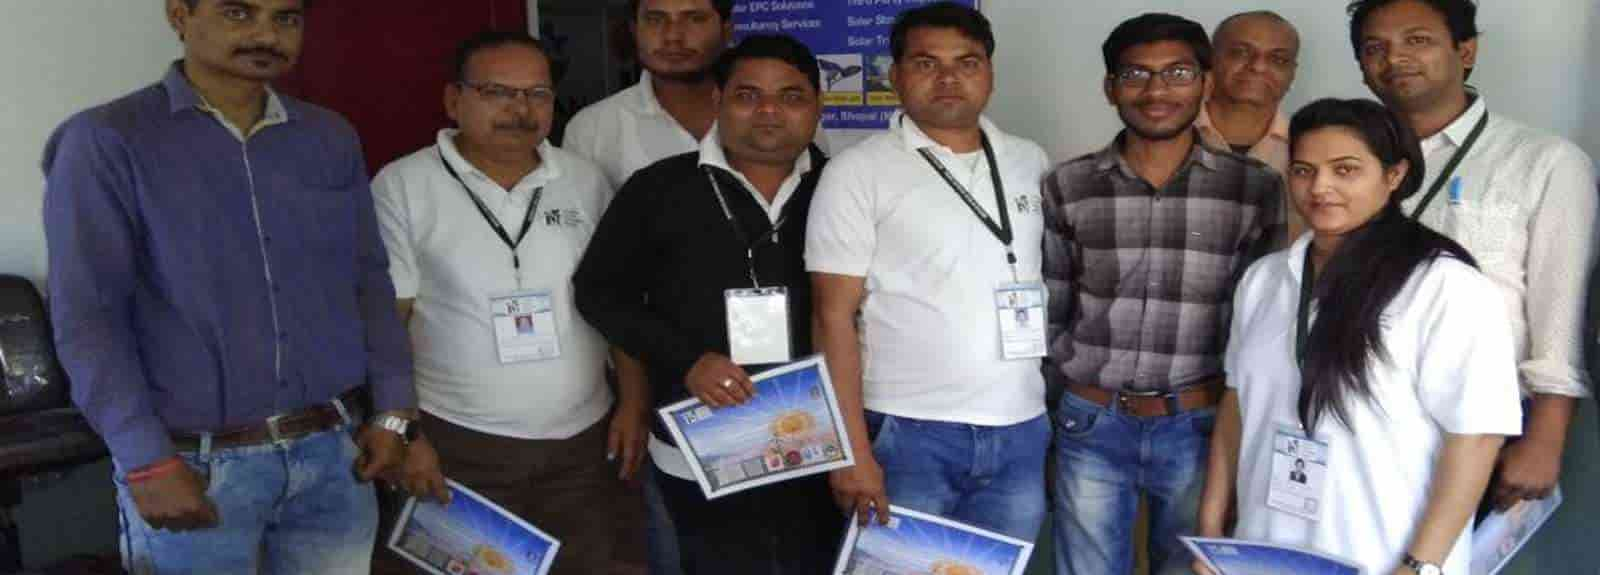 PV Solar Entreprenership Training